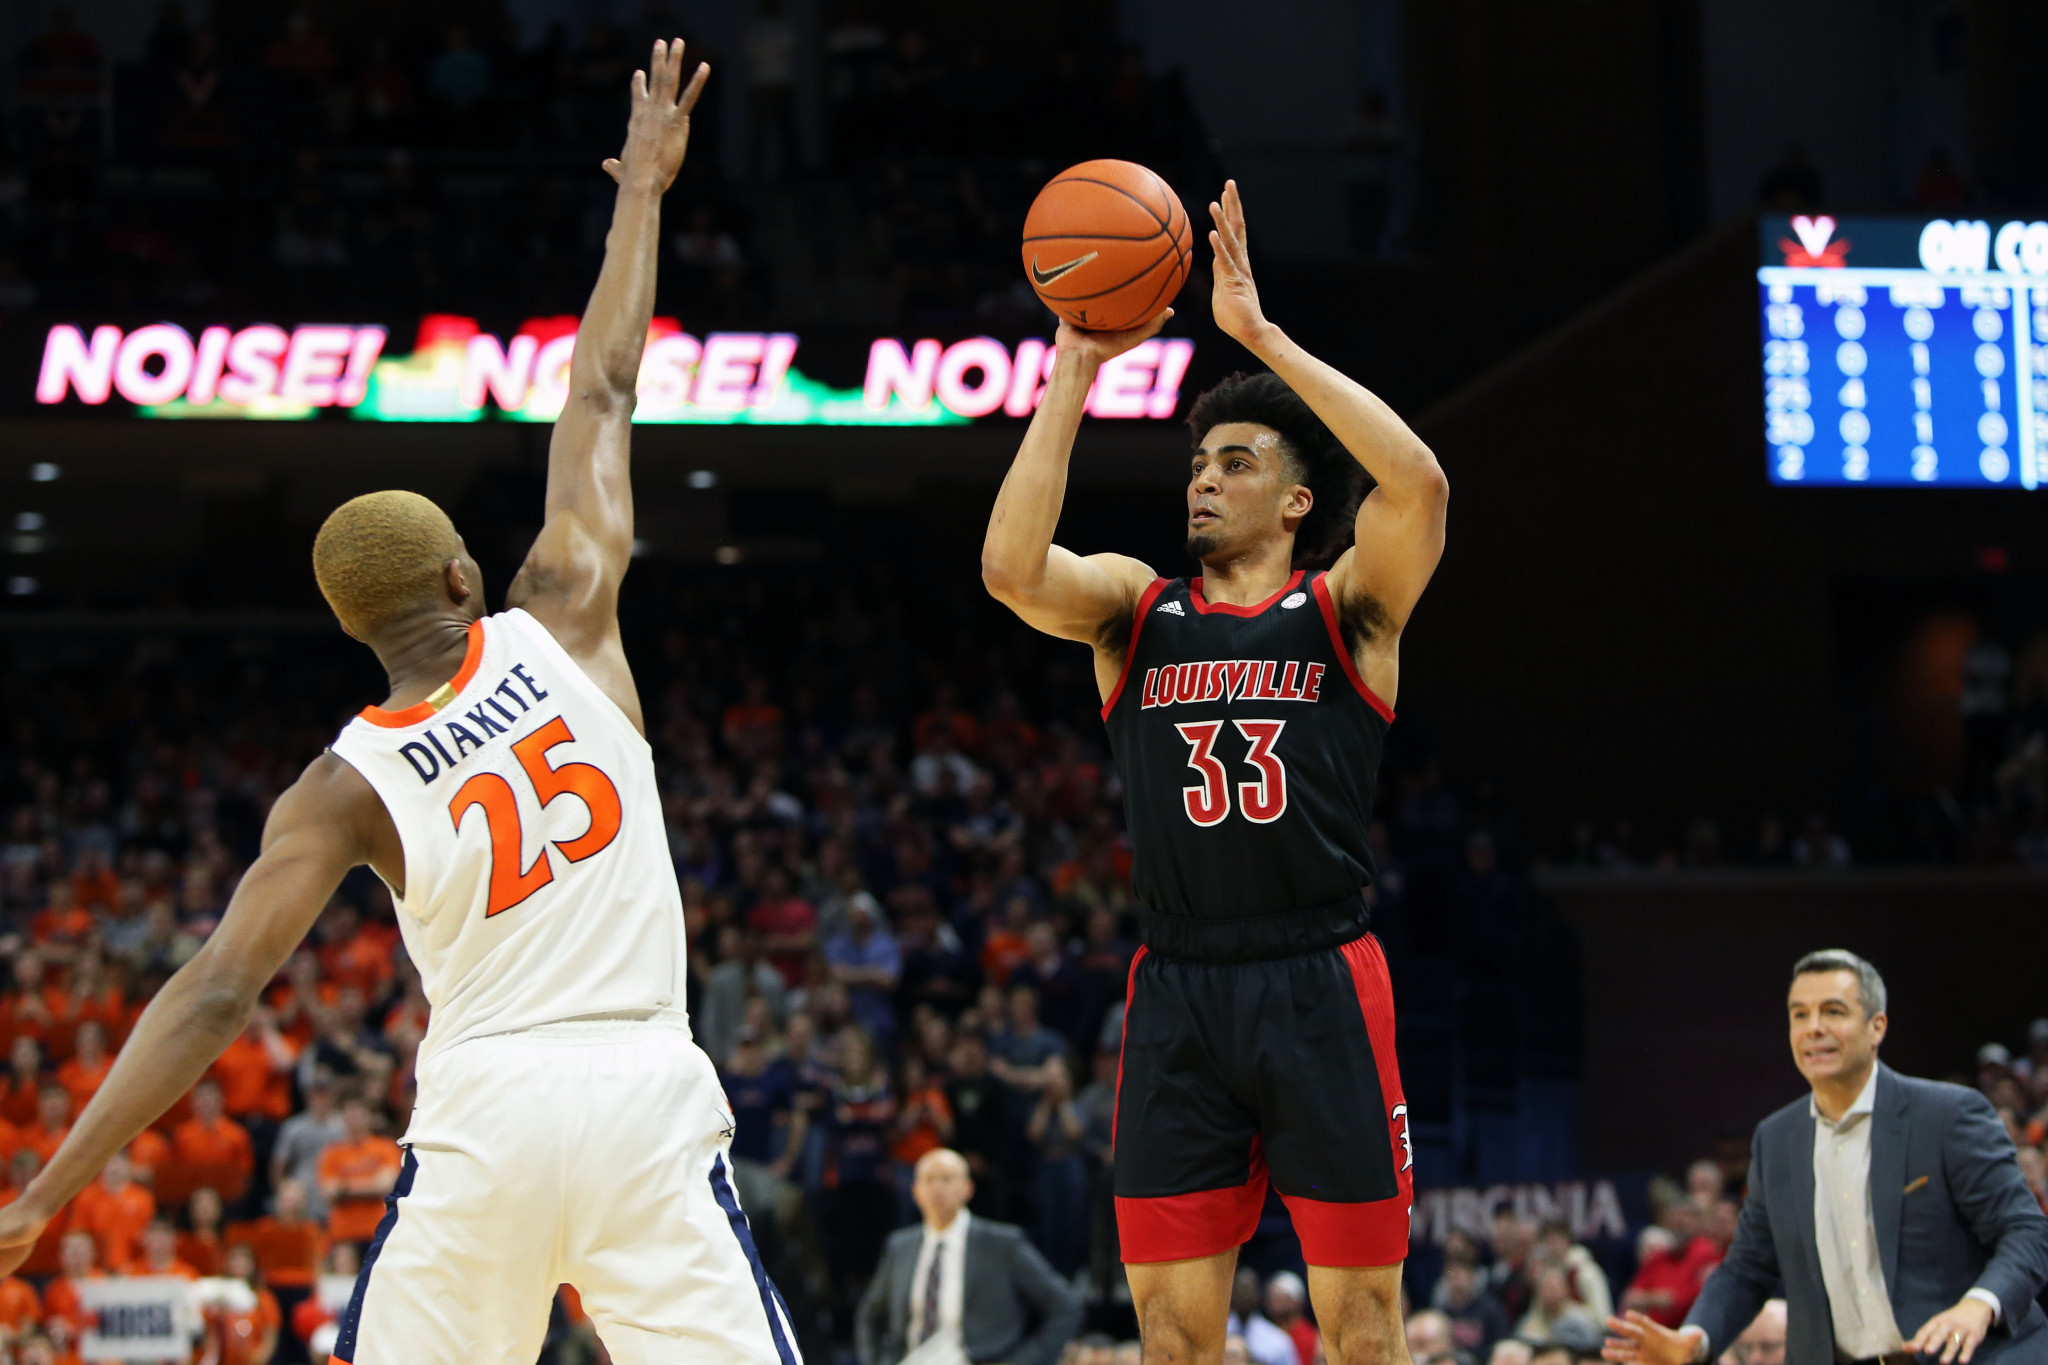 The Milwaukee Bucks' Jordan Nwora, who won the NBA title earlier this year, was one of eight NBA players in the Nigerian men's basketball team in Tokyo ©Getty Images